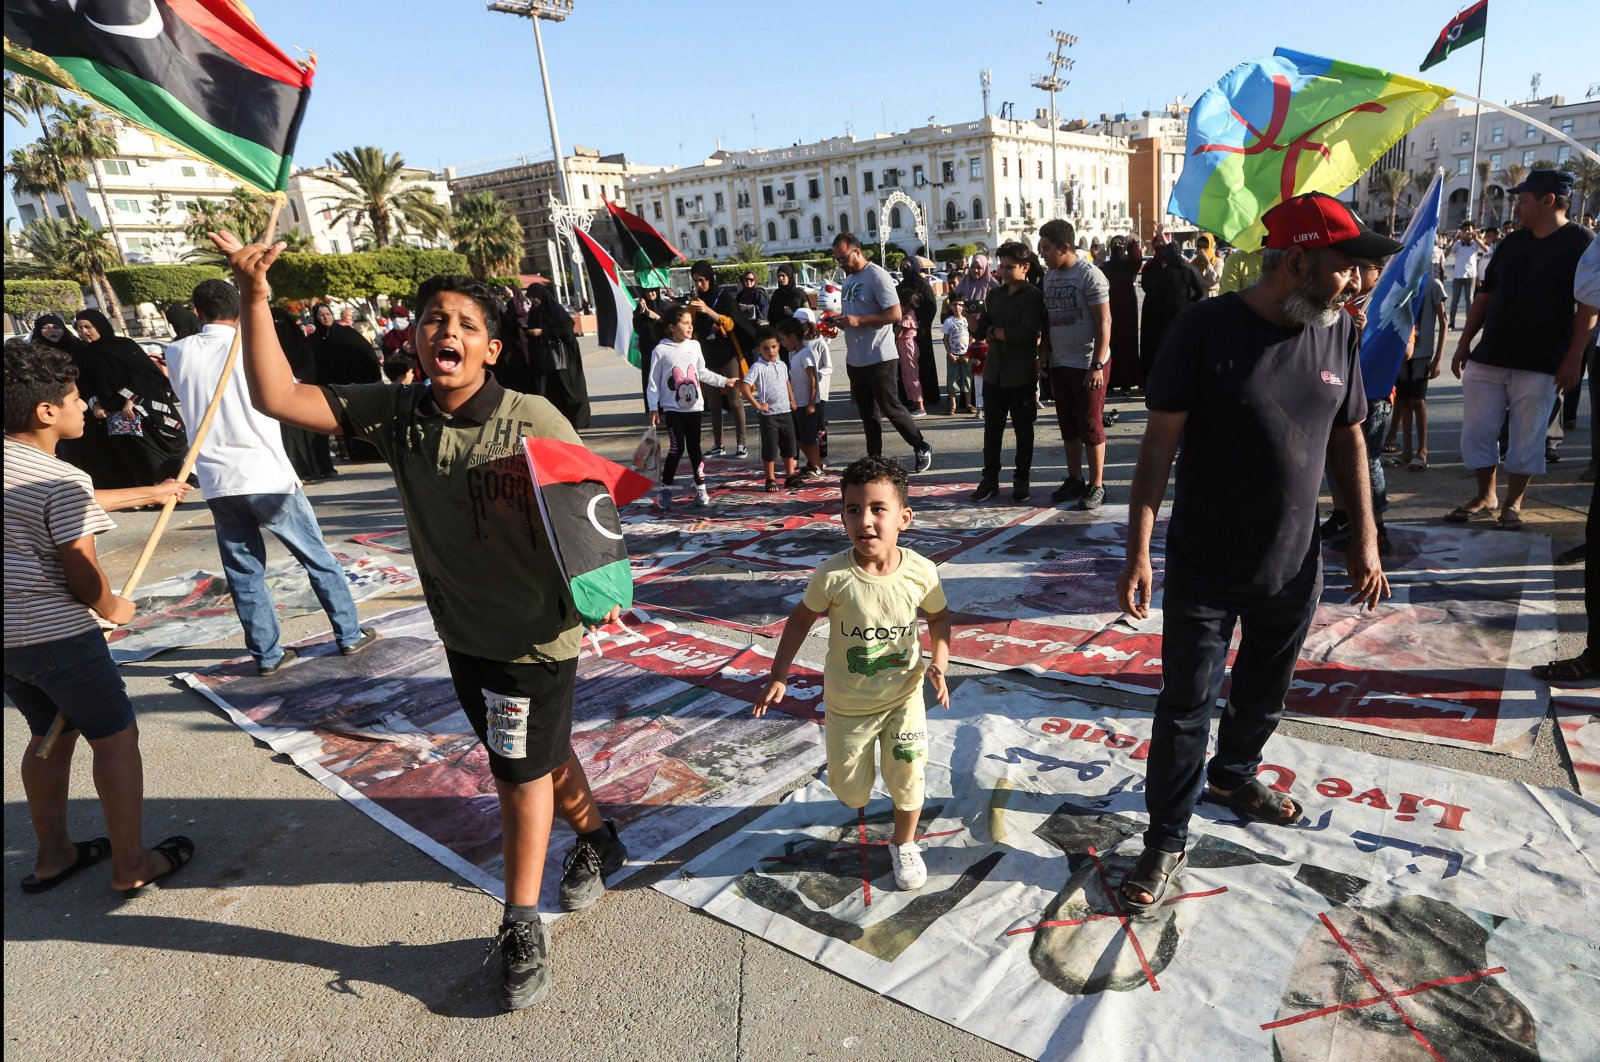 "Children wave flags of Libya as they walk on protest signs showing ""X"" marks on the faces of (R to L) French President Emmanuel Macron, Egyptian President Abdel-Fattah el-Sissi and Abu Dhabi's Crown Prince Sheikh Mohammed bin Zayed Al Nahyan, in the Martyrs' Square in the center of the Libyan capital Tripoli, June 21, 2020. (AFP Photo)"